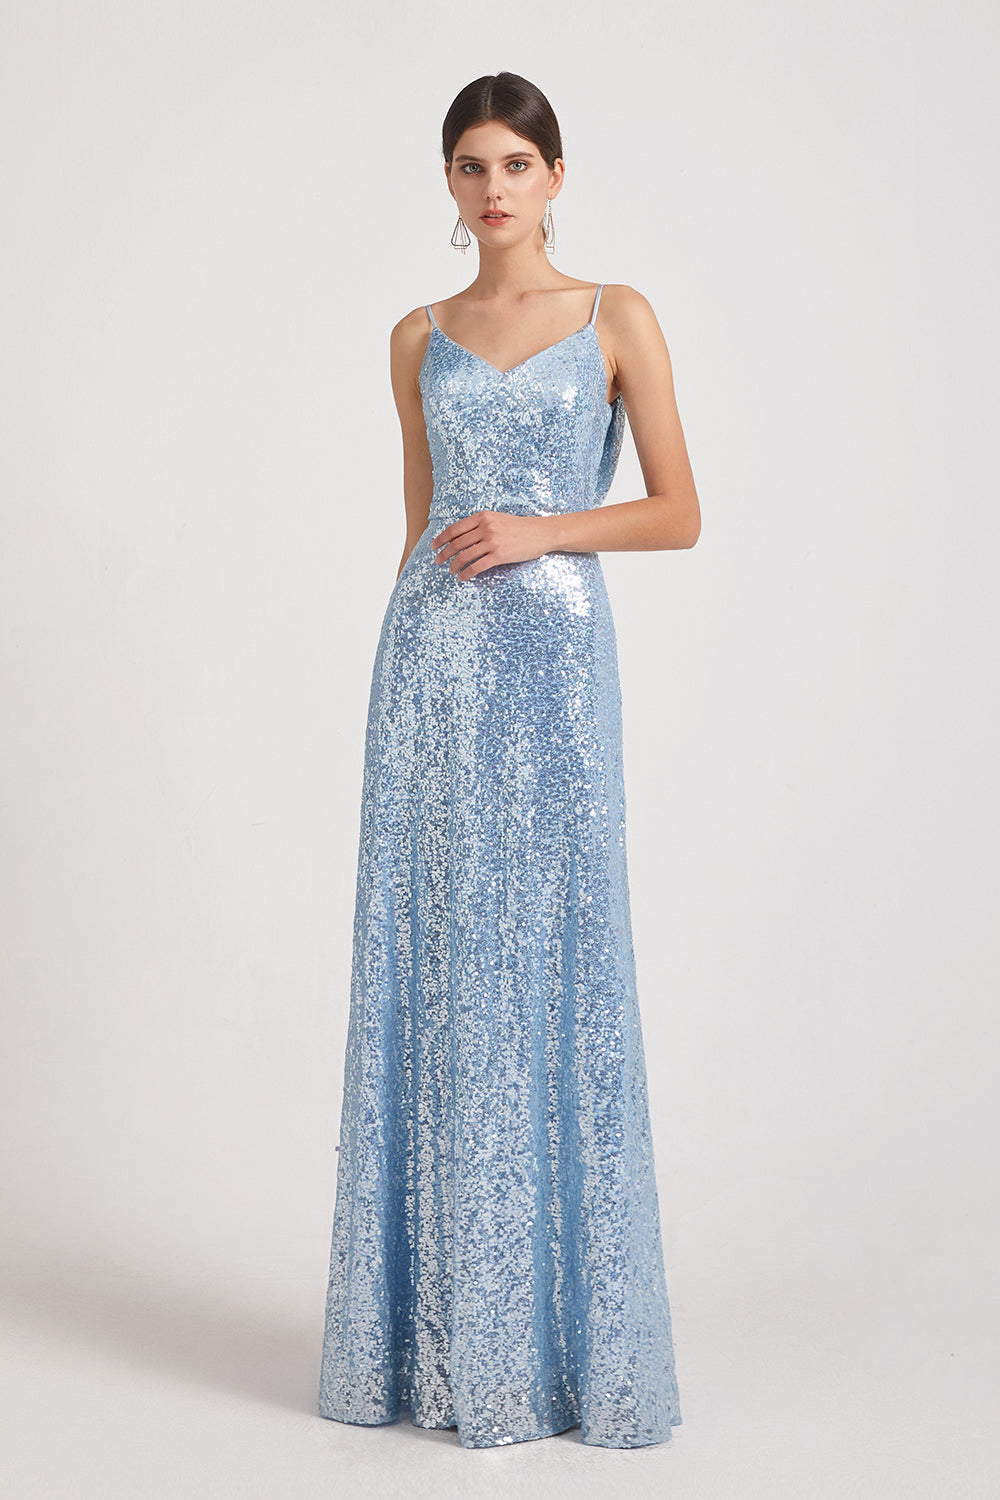 spaghetti straps v-neck sequin bridesmaid dress